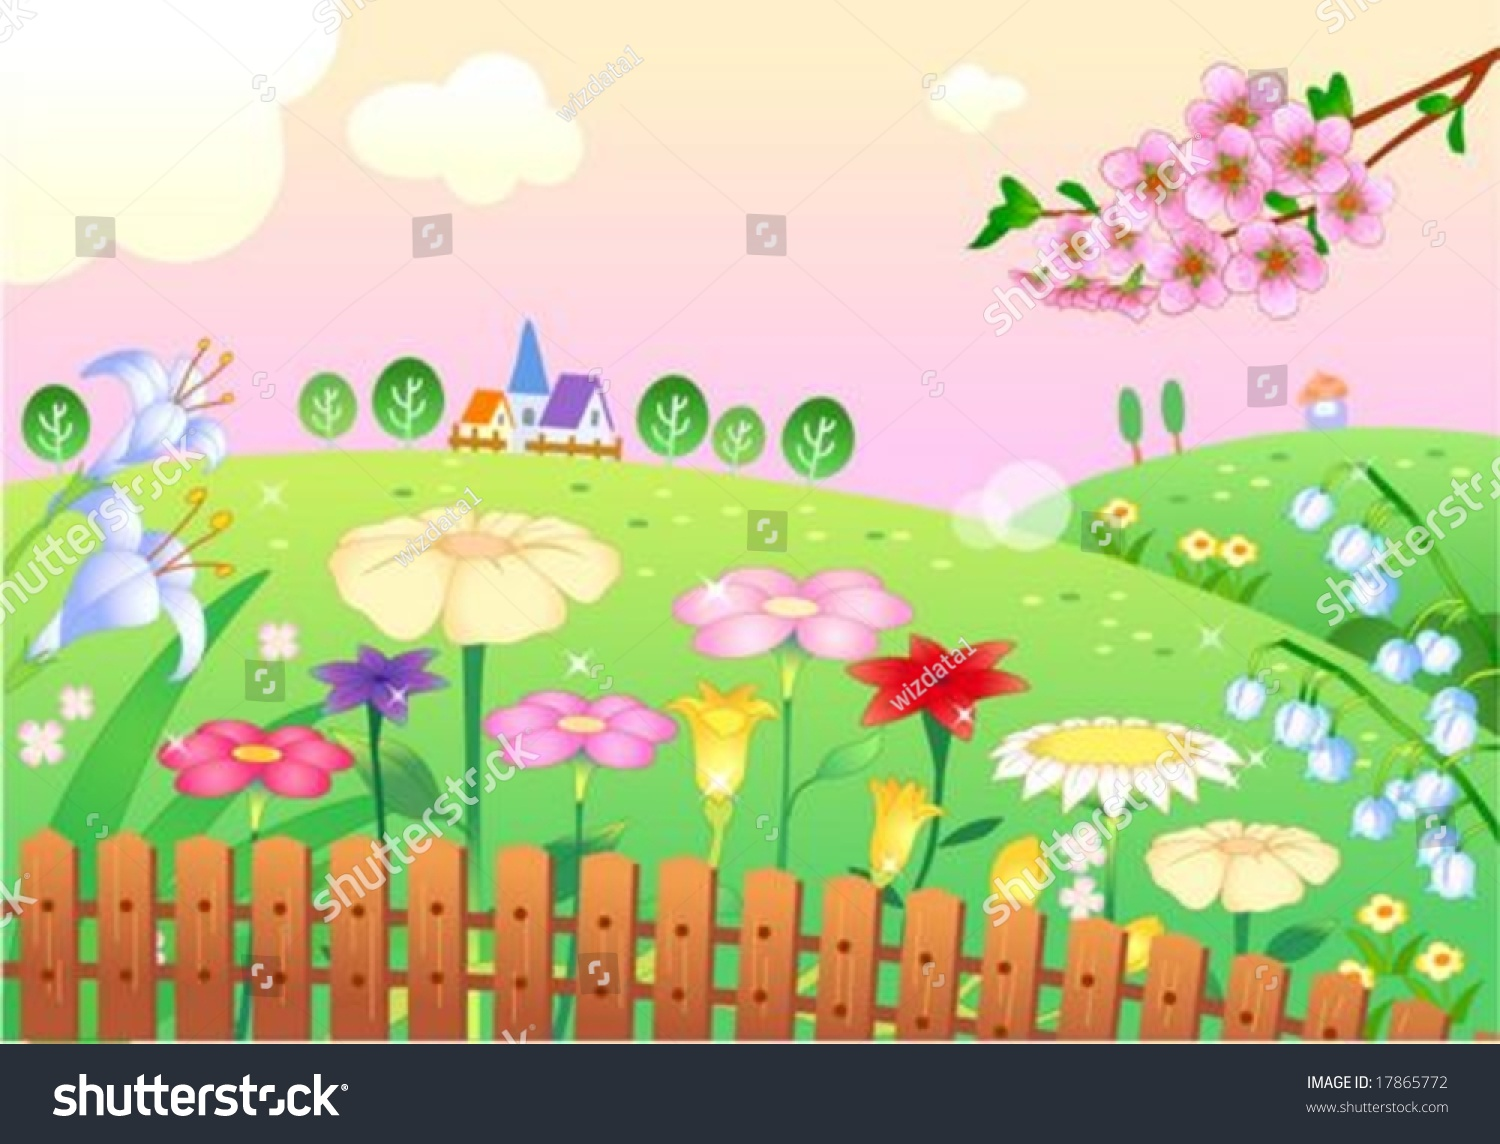 Beautiful garden cartoon - Beautiful Garden Cartoon Beautiful Landscape Rural Flower Garden With Pretty Pink Sky And Green Grass